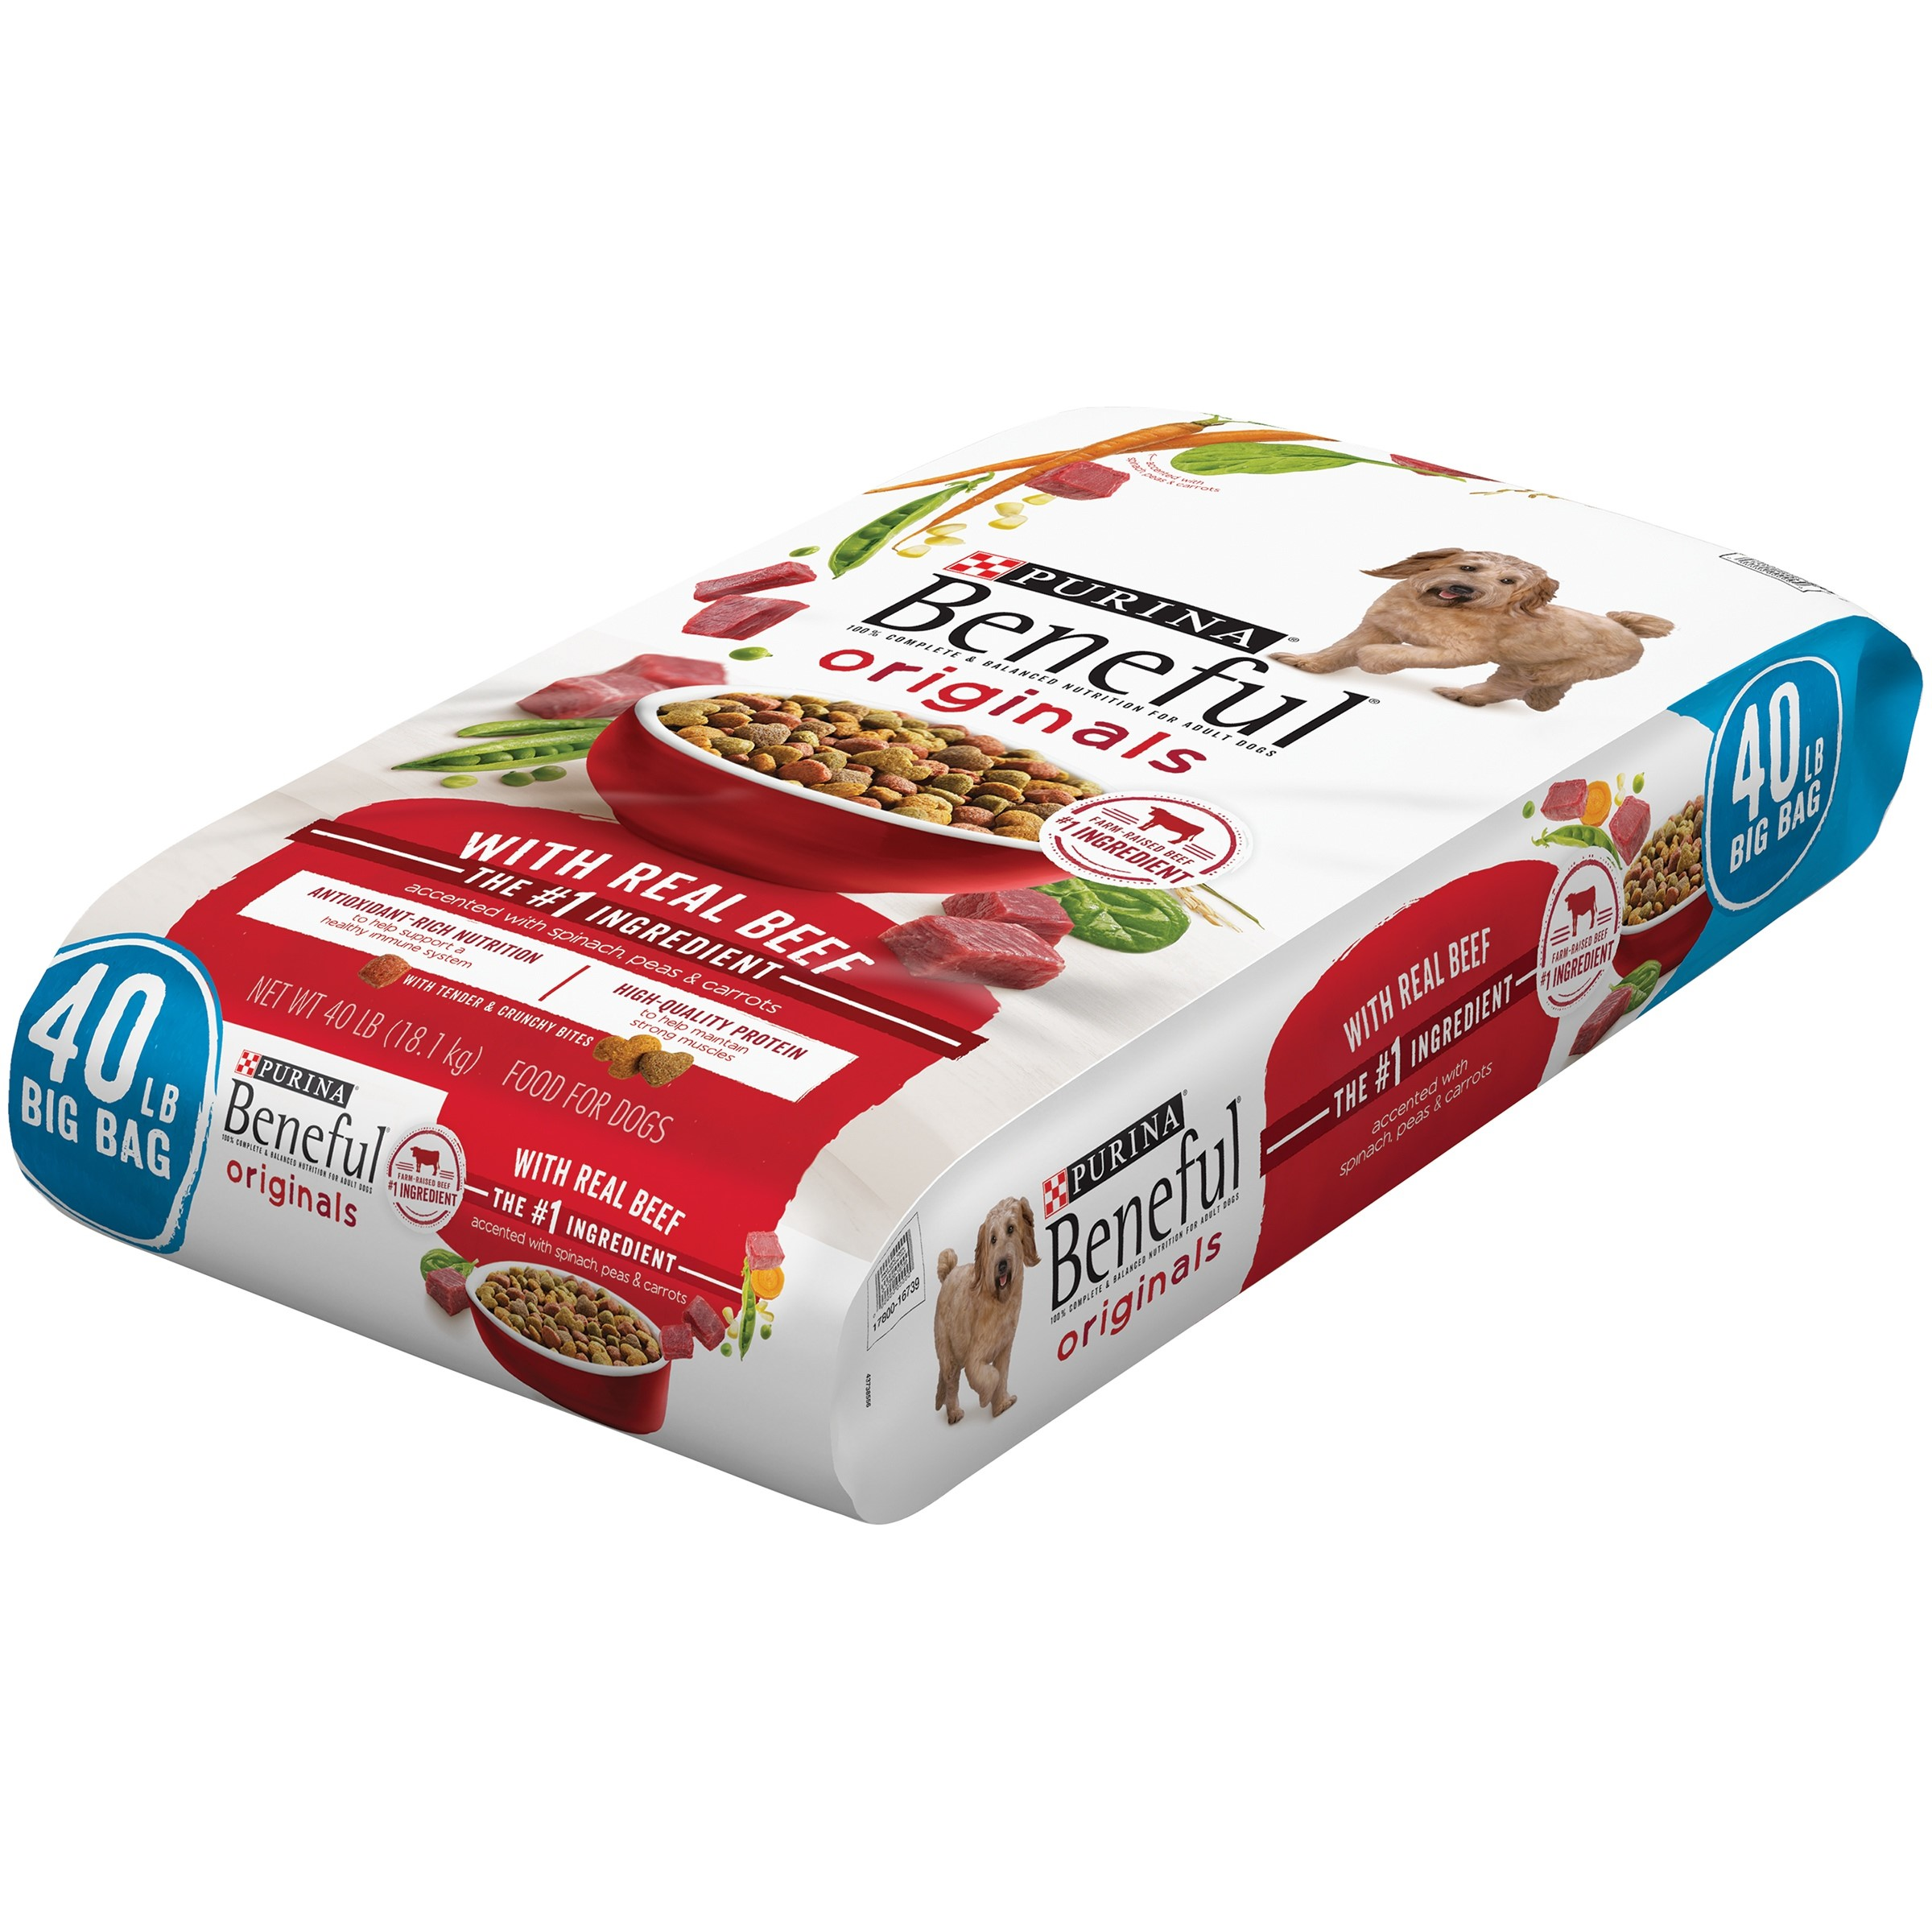 Purina Beneful Originals With Real Beef Dog Food 40 lb. Bag